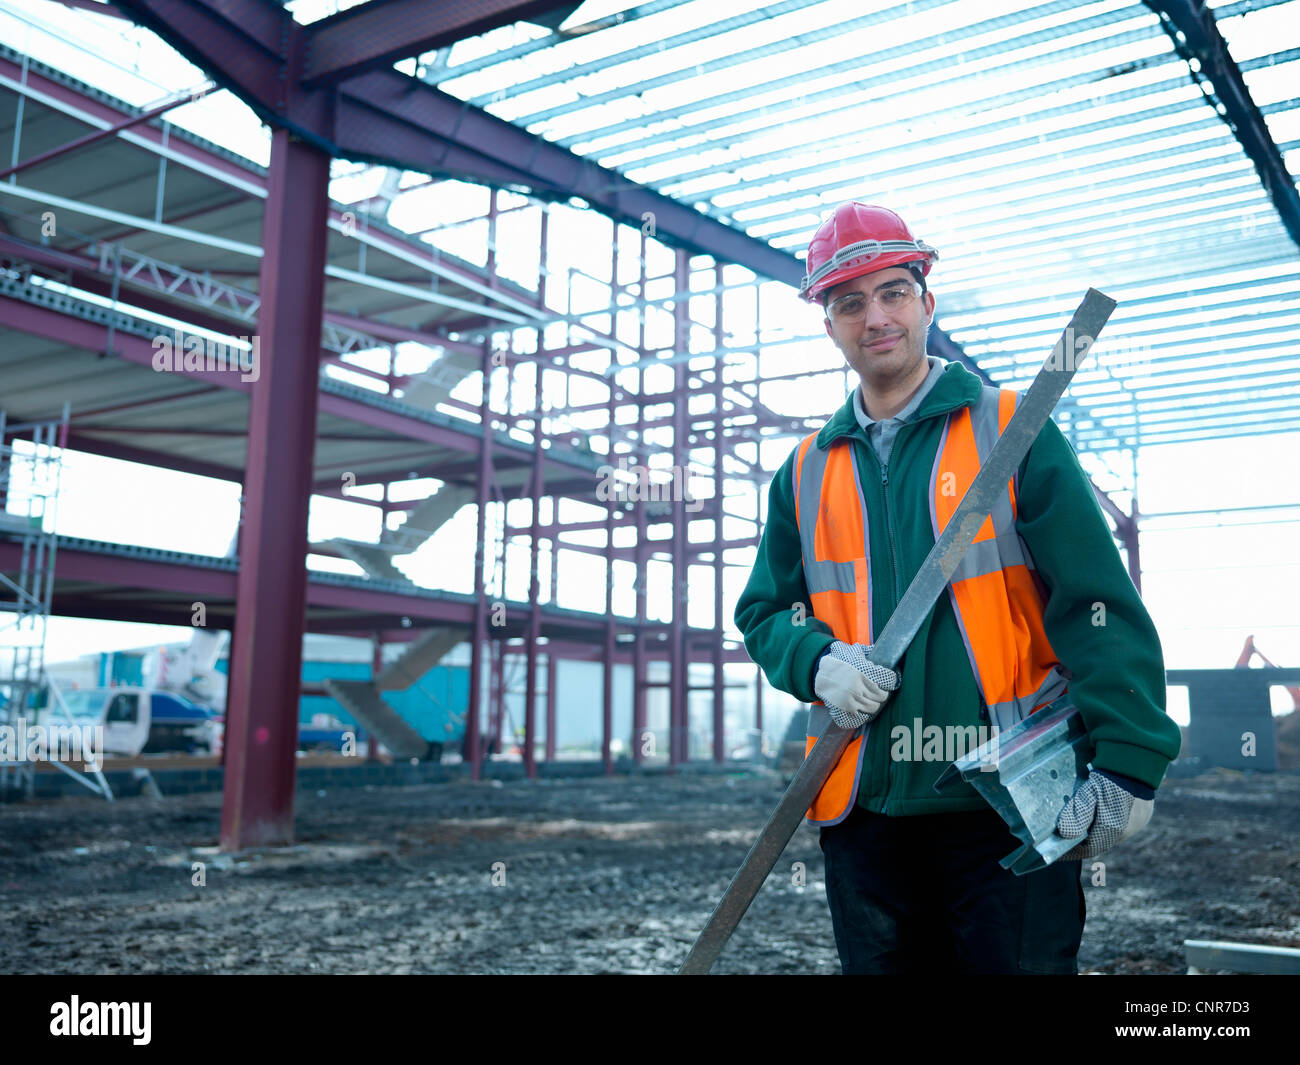 Construction worker holding pole - Stock Image